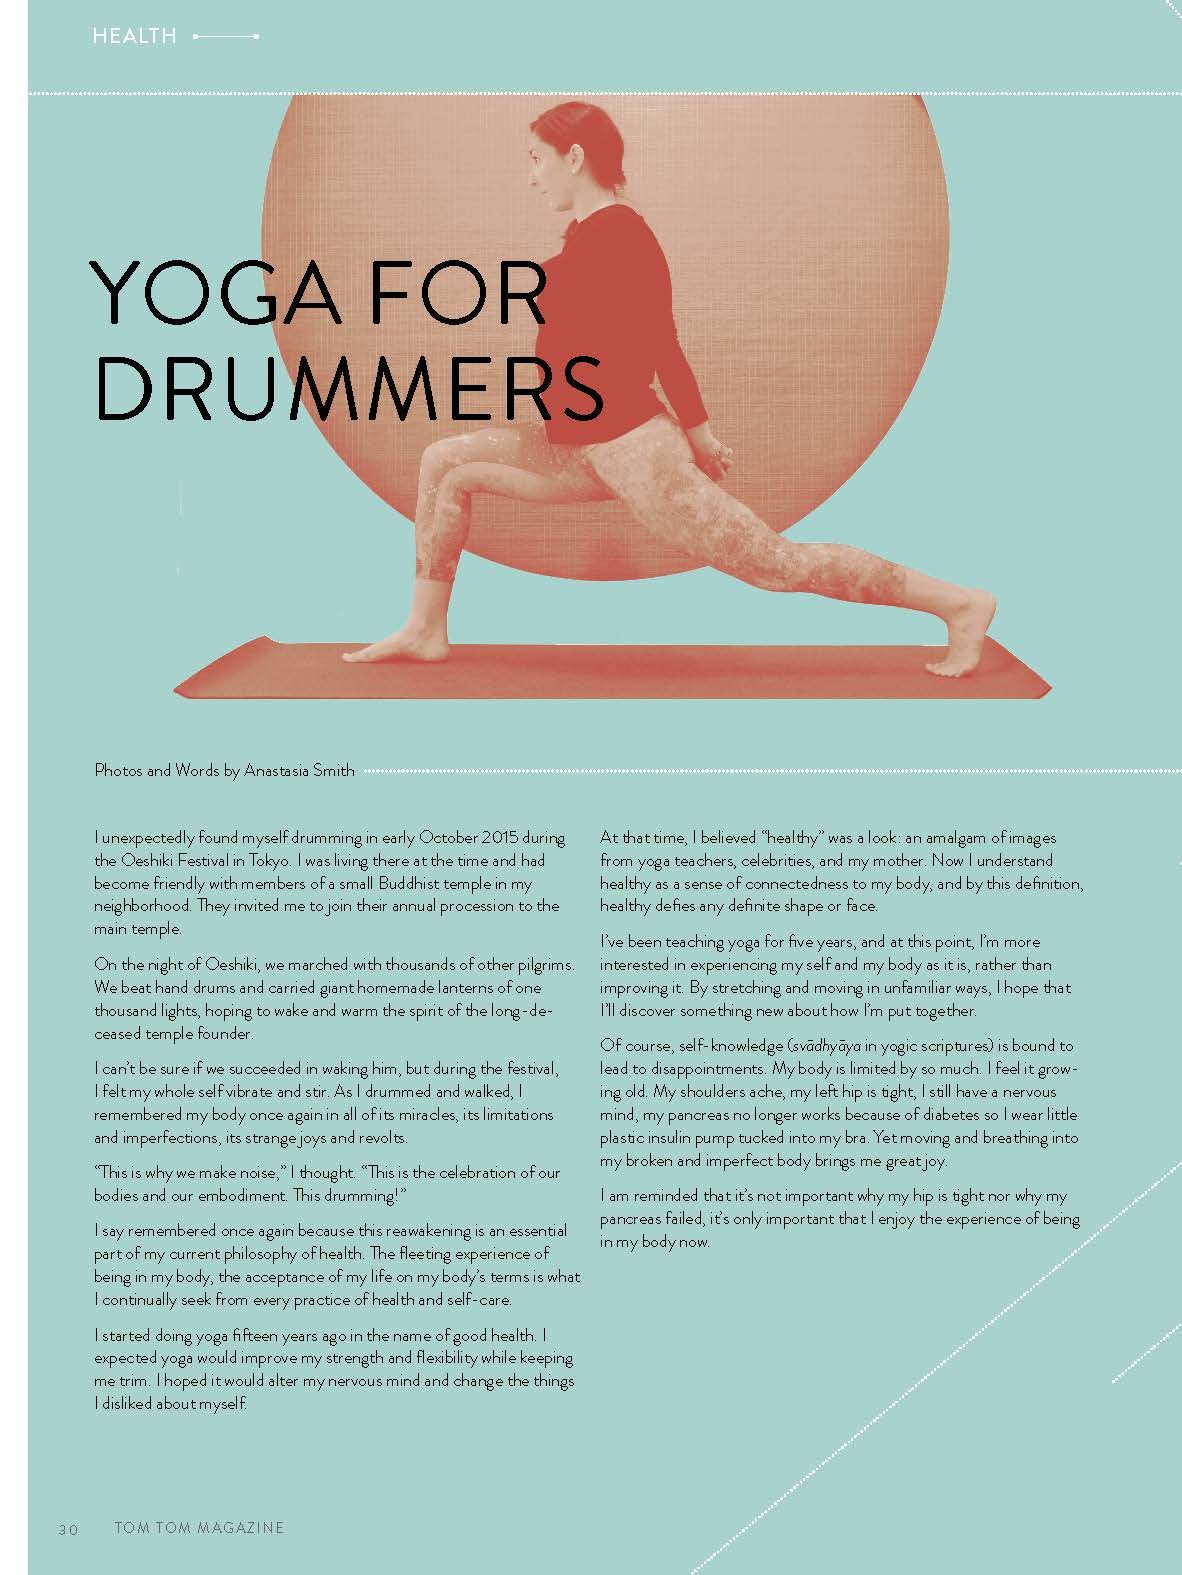 Tom Tom Magazine Issue 25: HEALTH - Drummers | Music | Feminism: Shop Tom Tom